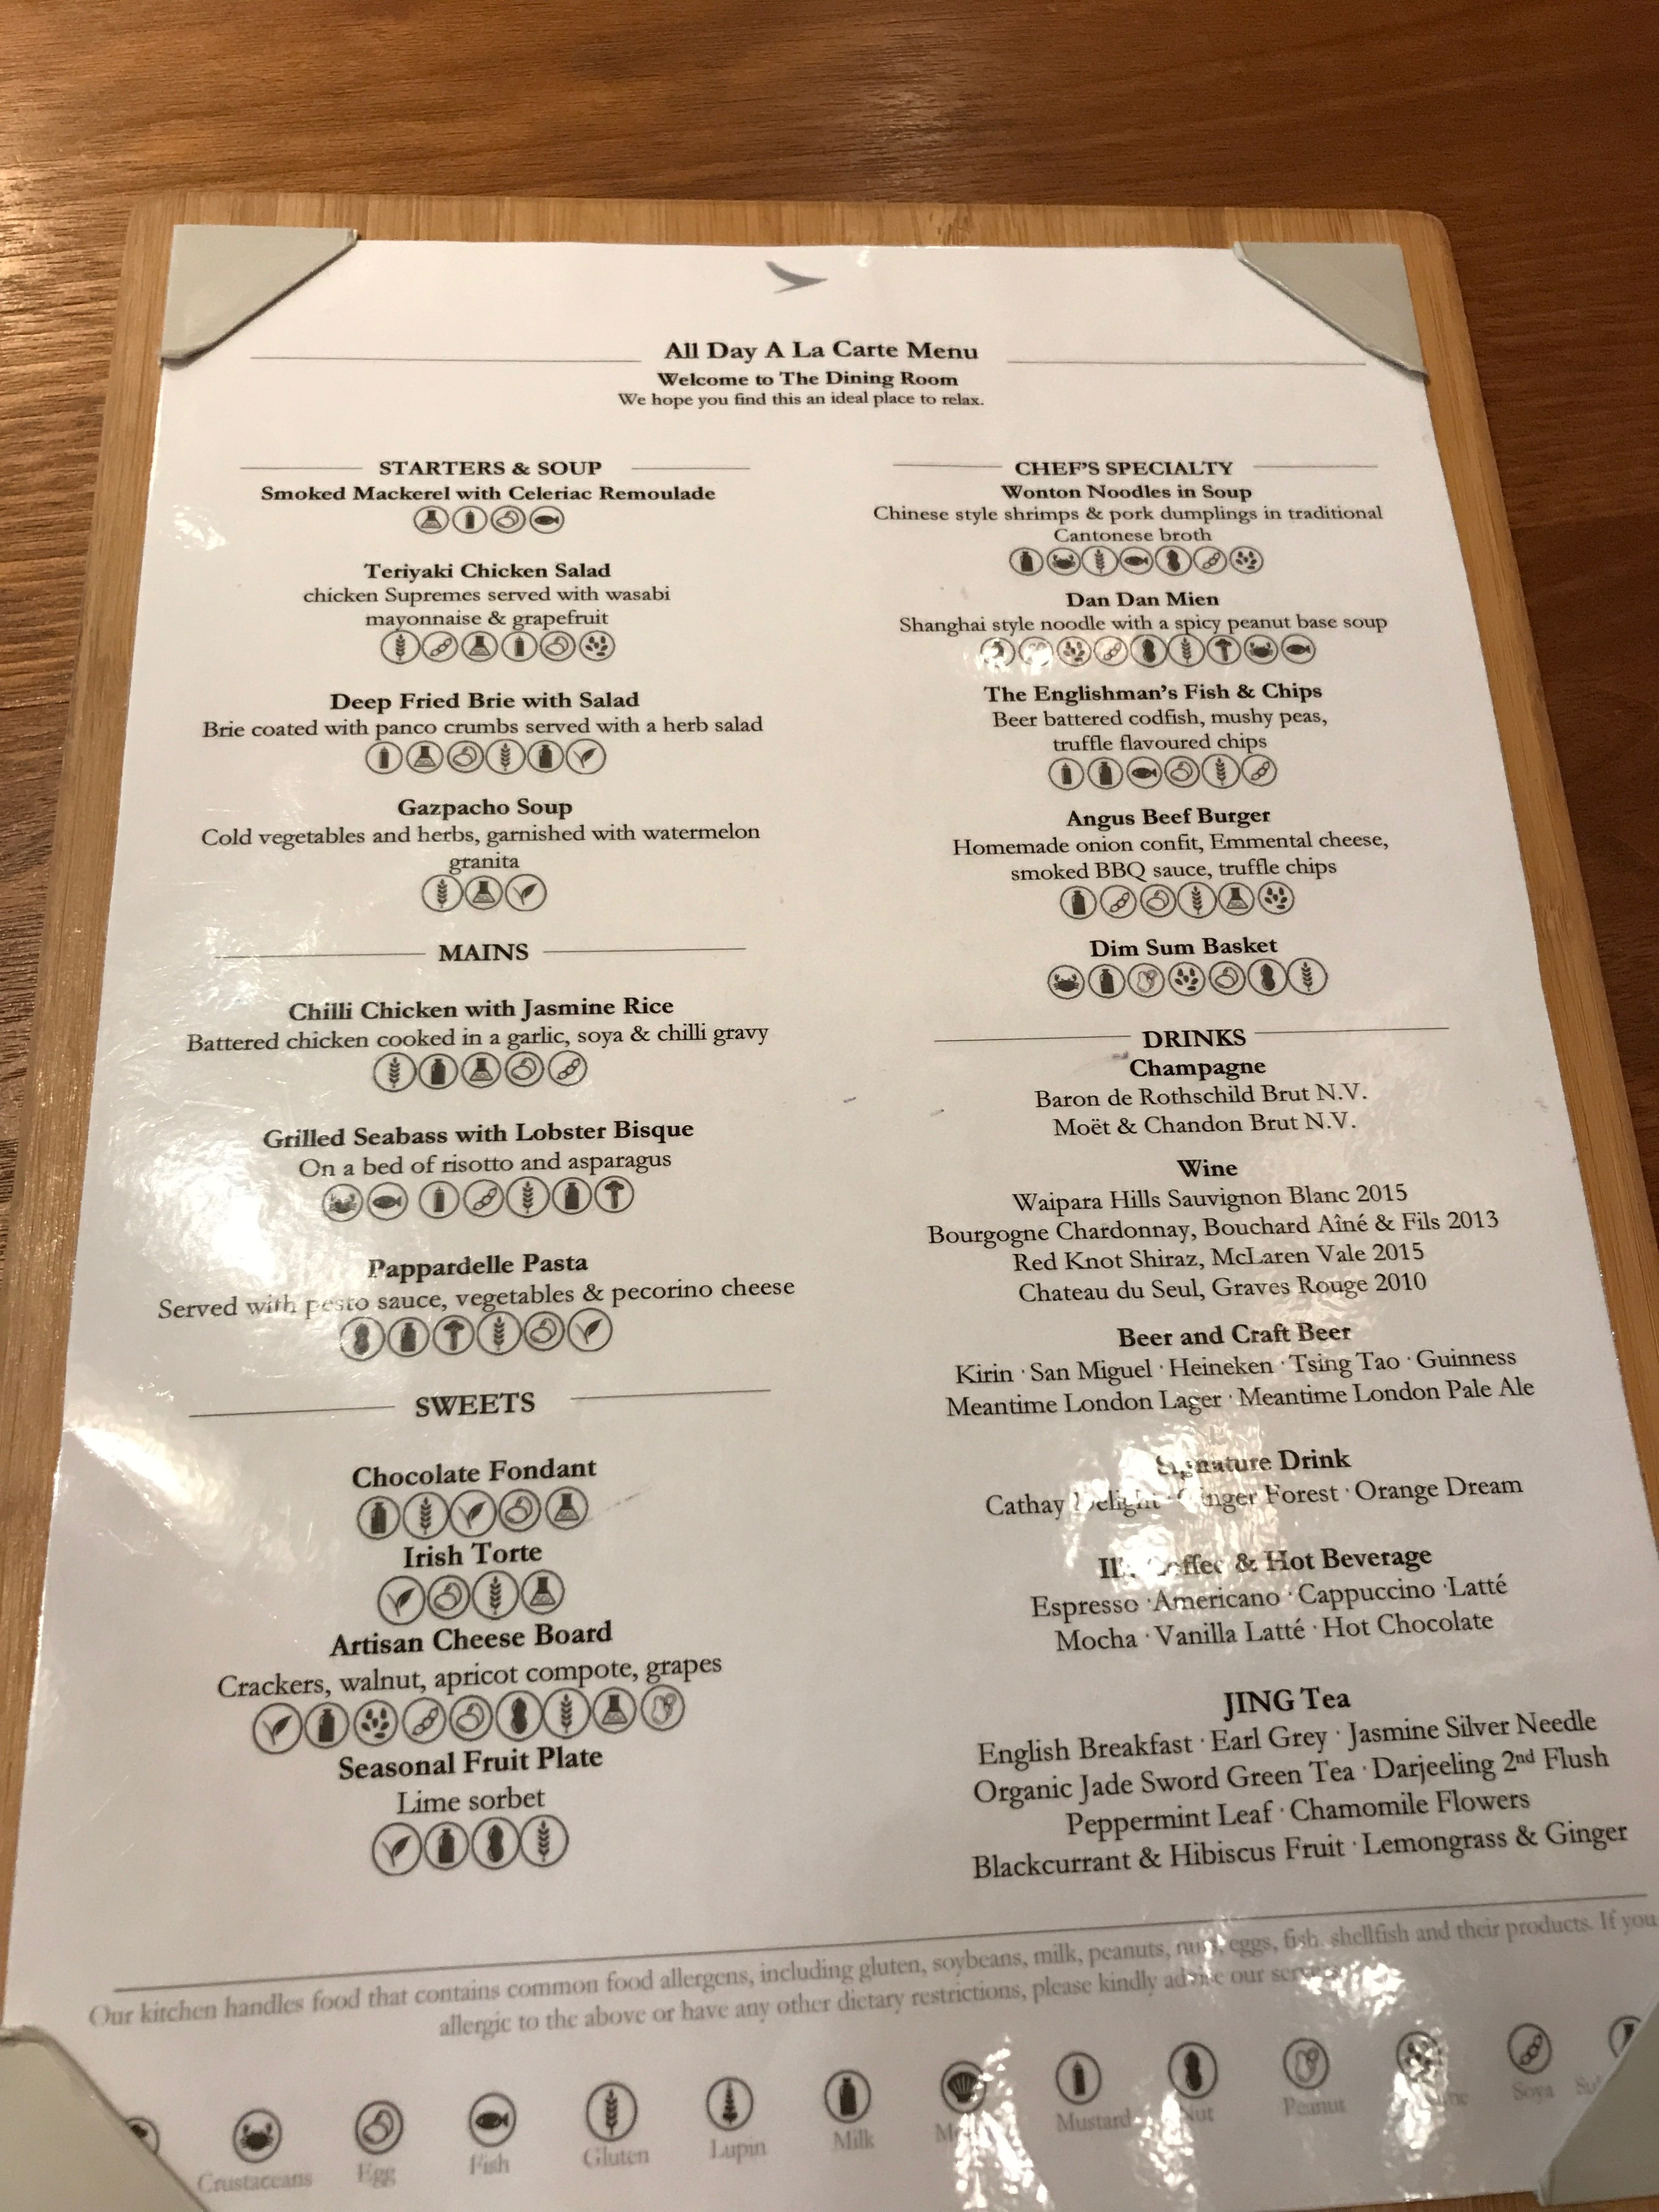 Cathay Pacific food and drink menu at the Heathrow terminal 3 first class lounge